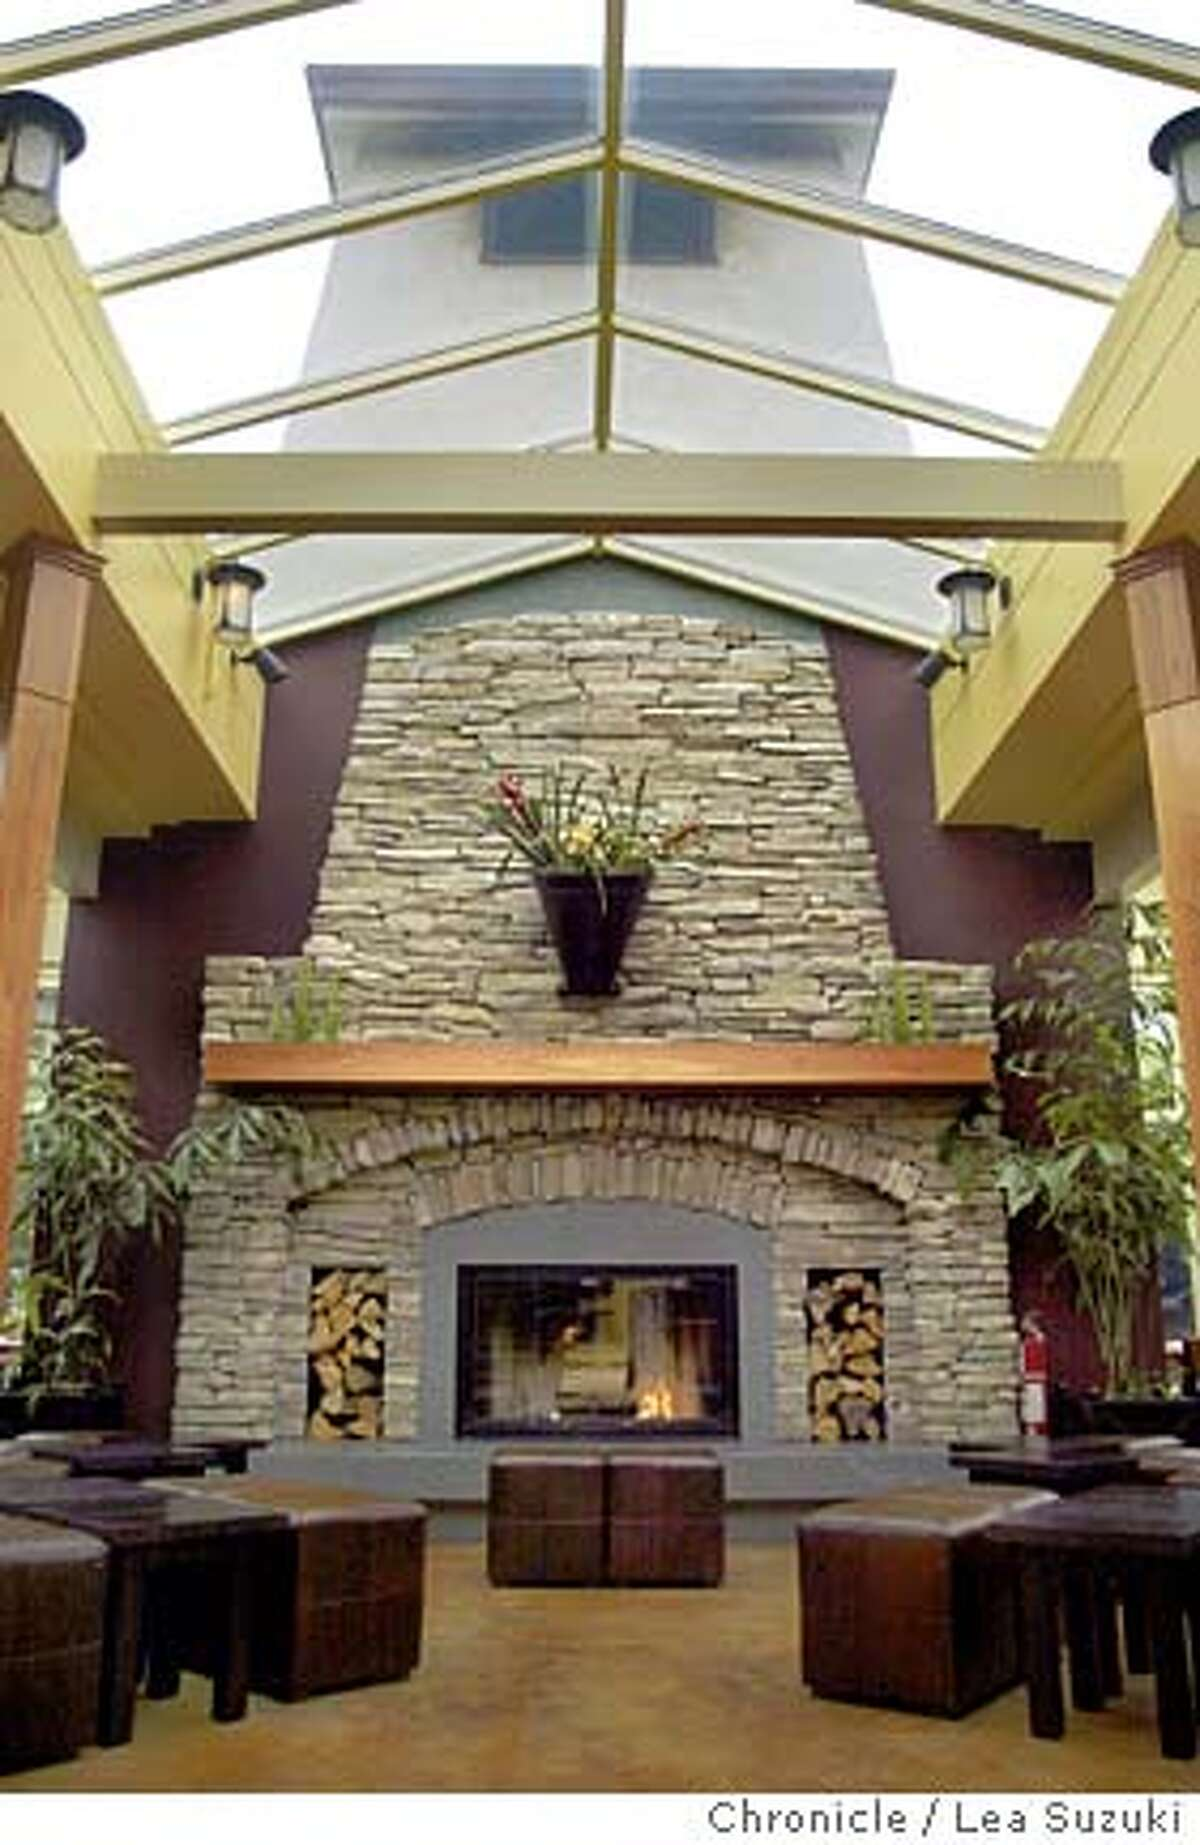 The fireplace commands the center of the restaurant and has a little seating area in front of it. The Park Chalet (restaurant behind the beach chalet). Please get pictures of the fireplace, also people outside on the adarondack chairs. For food, please get the hamburger, crab cocktail and the beer sampler. Photo taken on 06/30/04, in San Francisco, CA. Photo By LEA SUZUKI / The San Francisco Chronicle